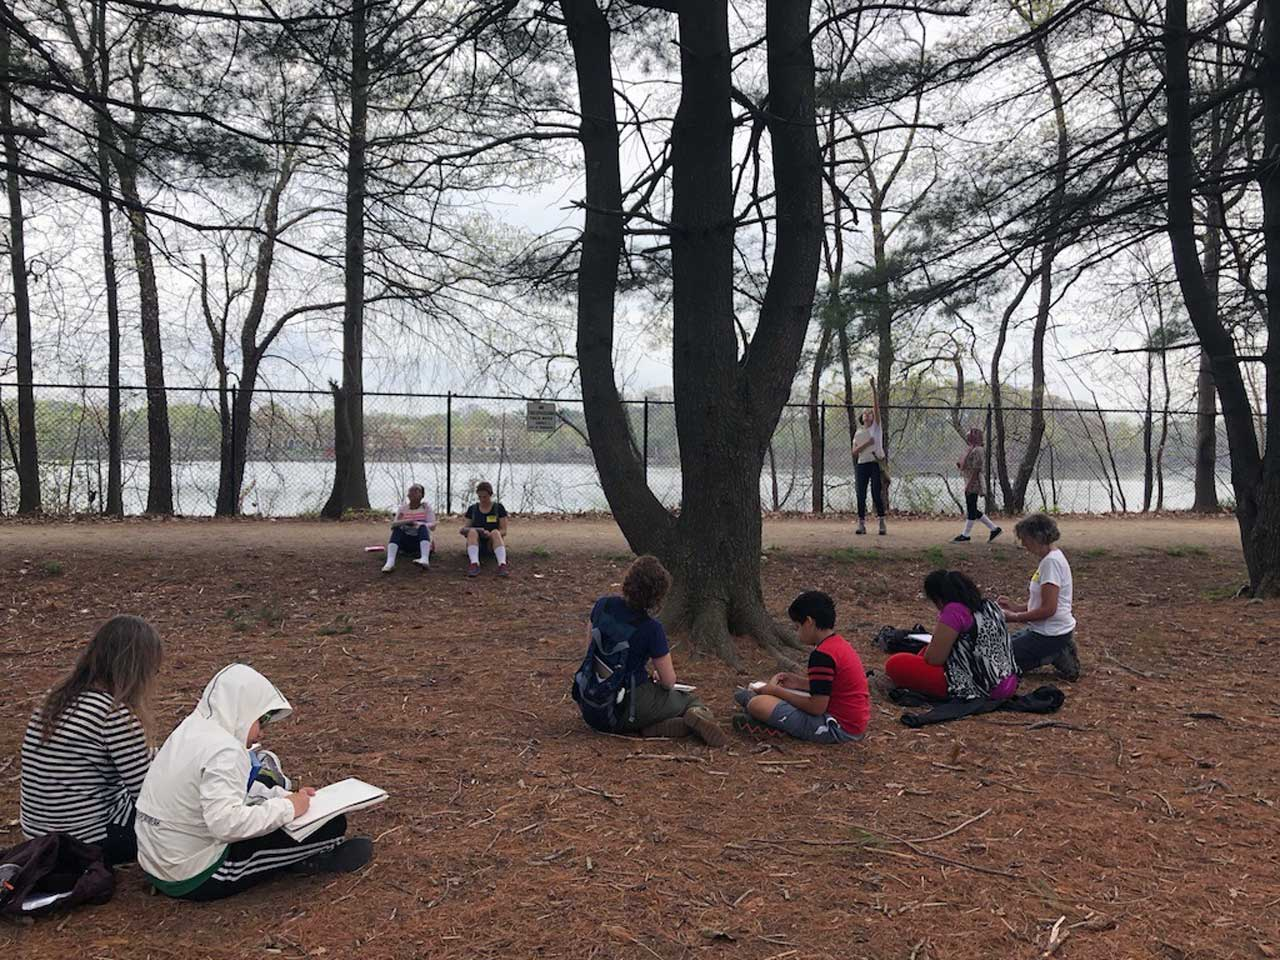 five pairs of adults and children are spread out in a pine grove with water in the backround